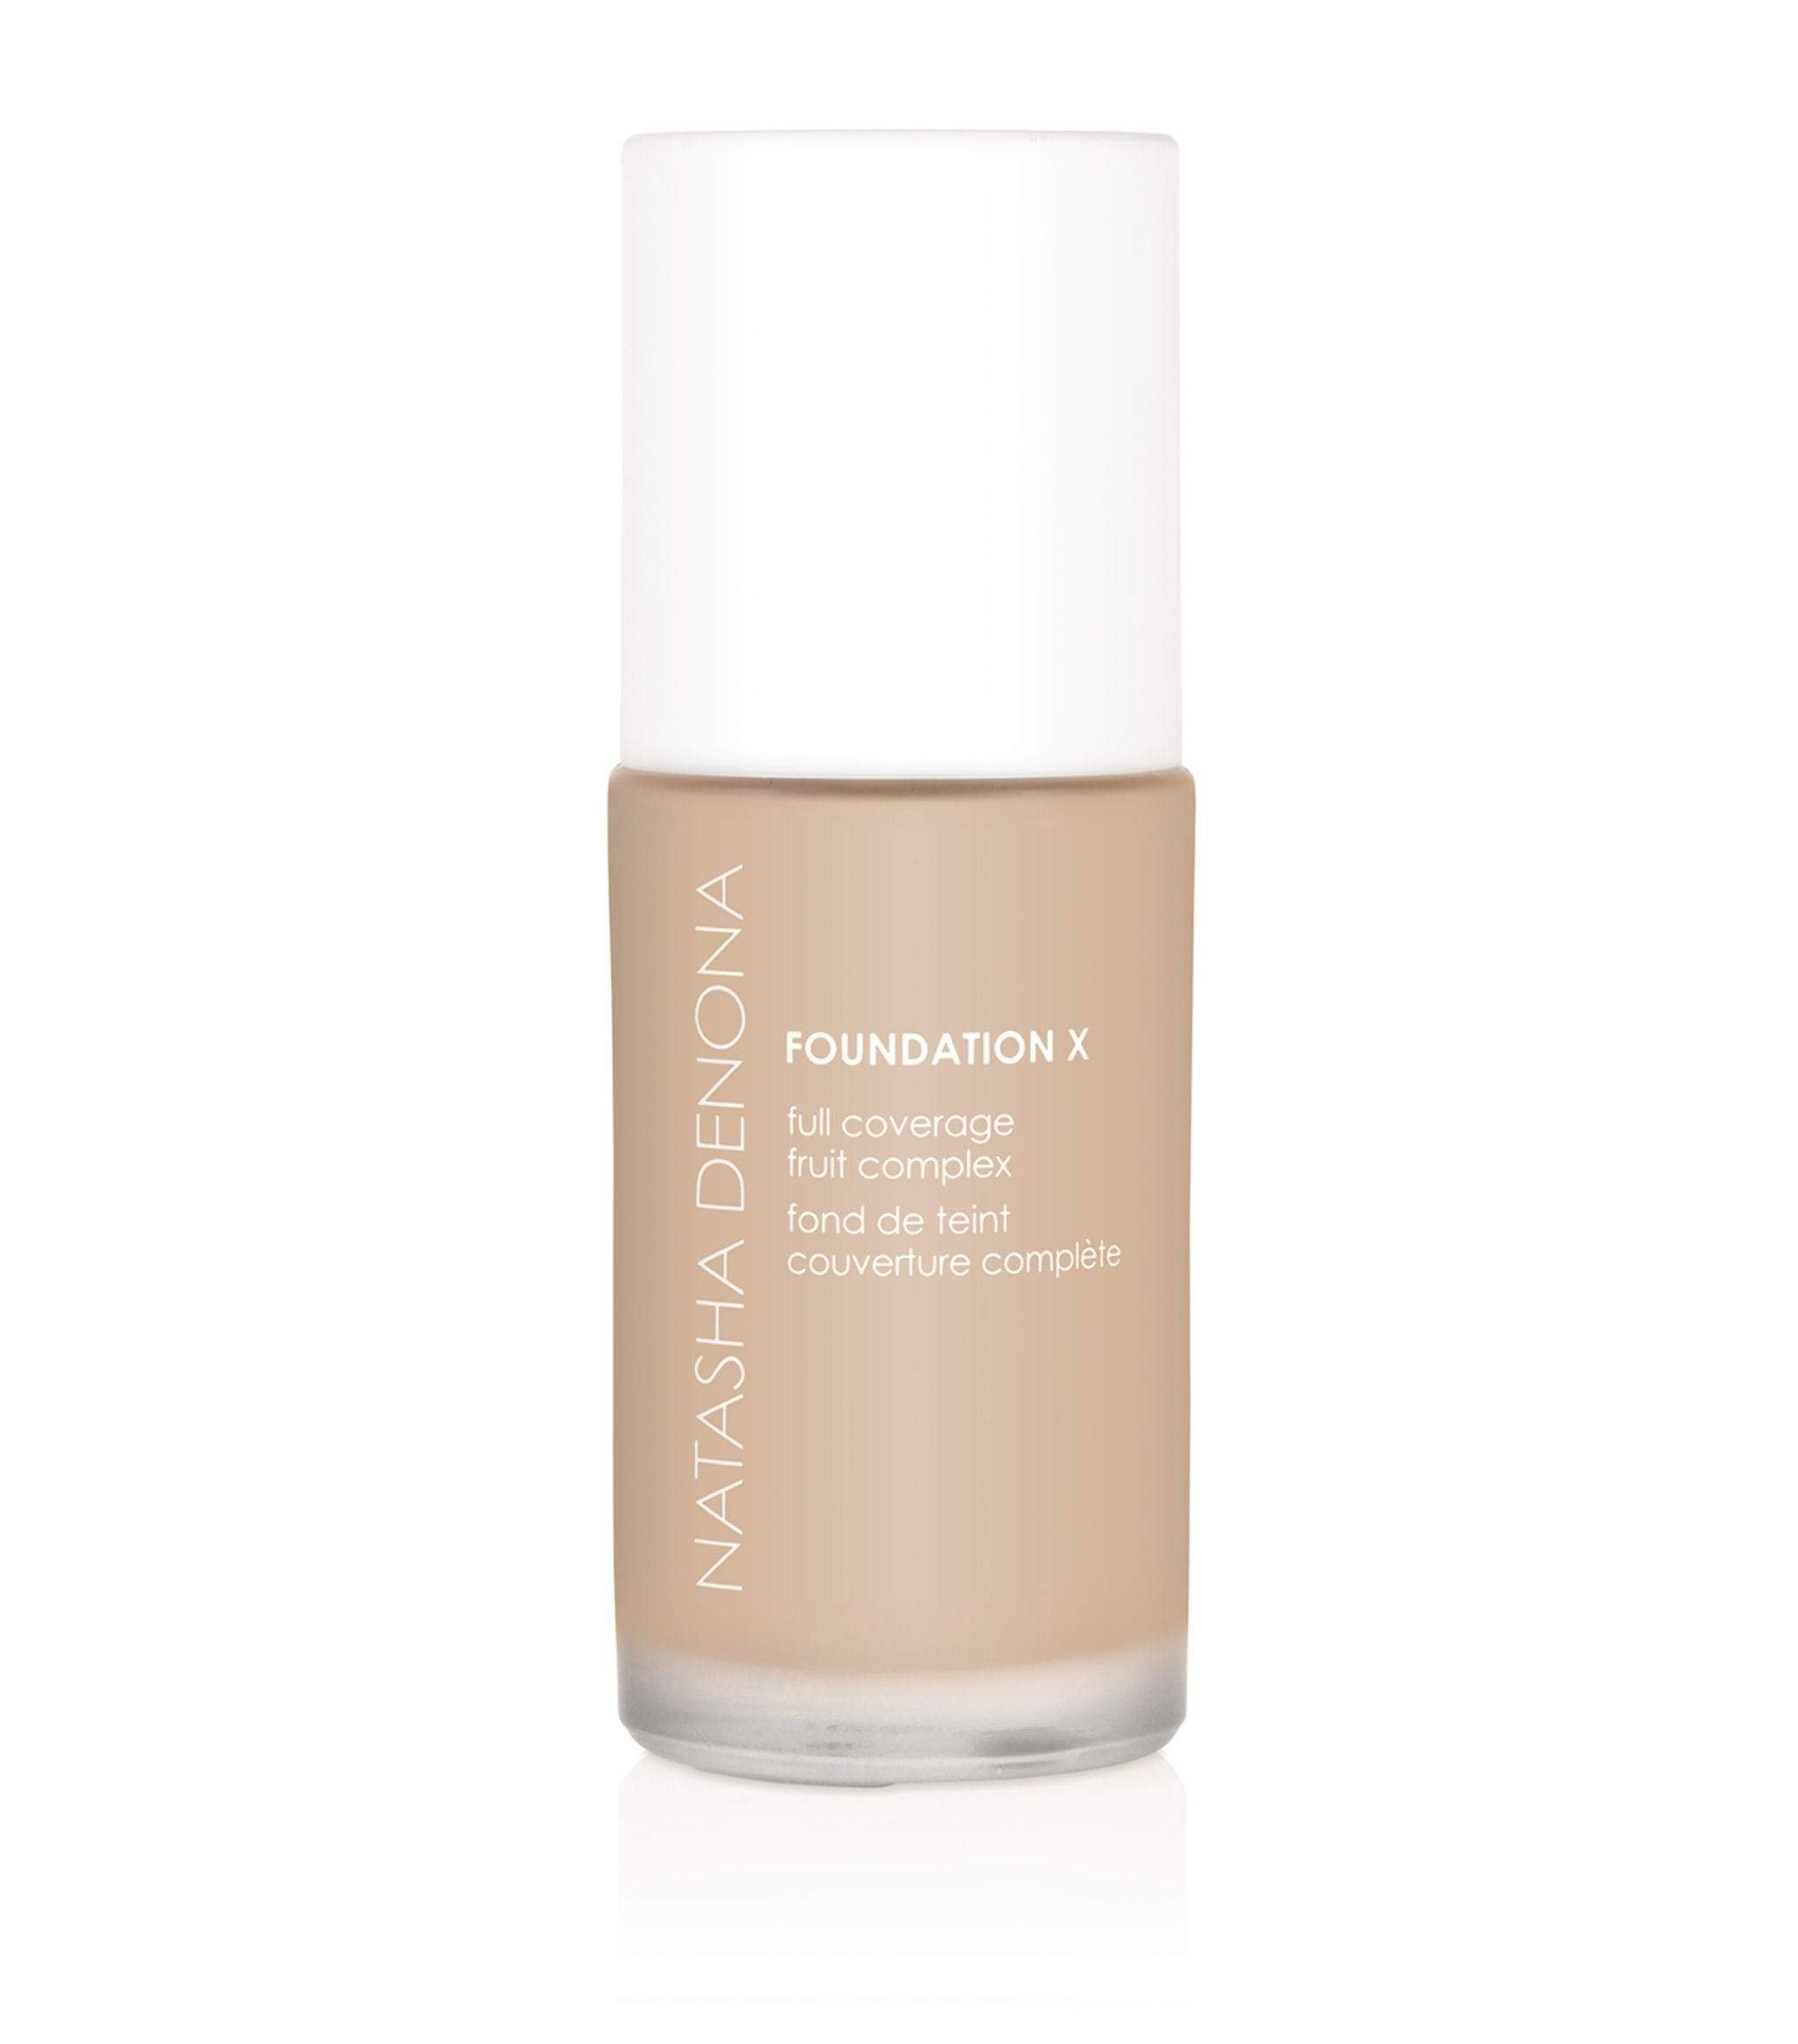 Natasha Denona Foundation X: #40 Neutral Light, foundation, London Loves Beauty